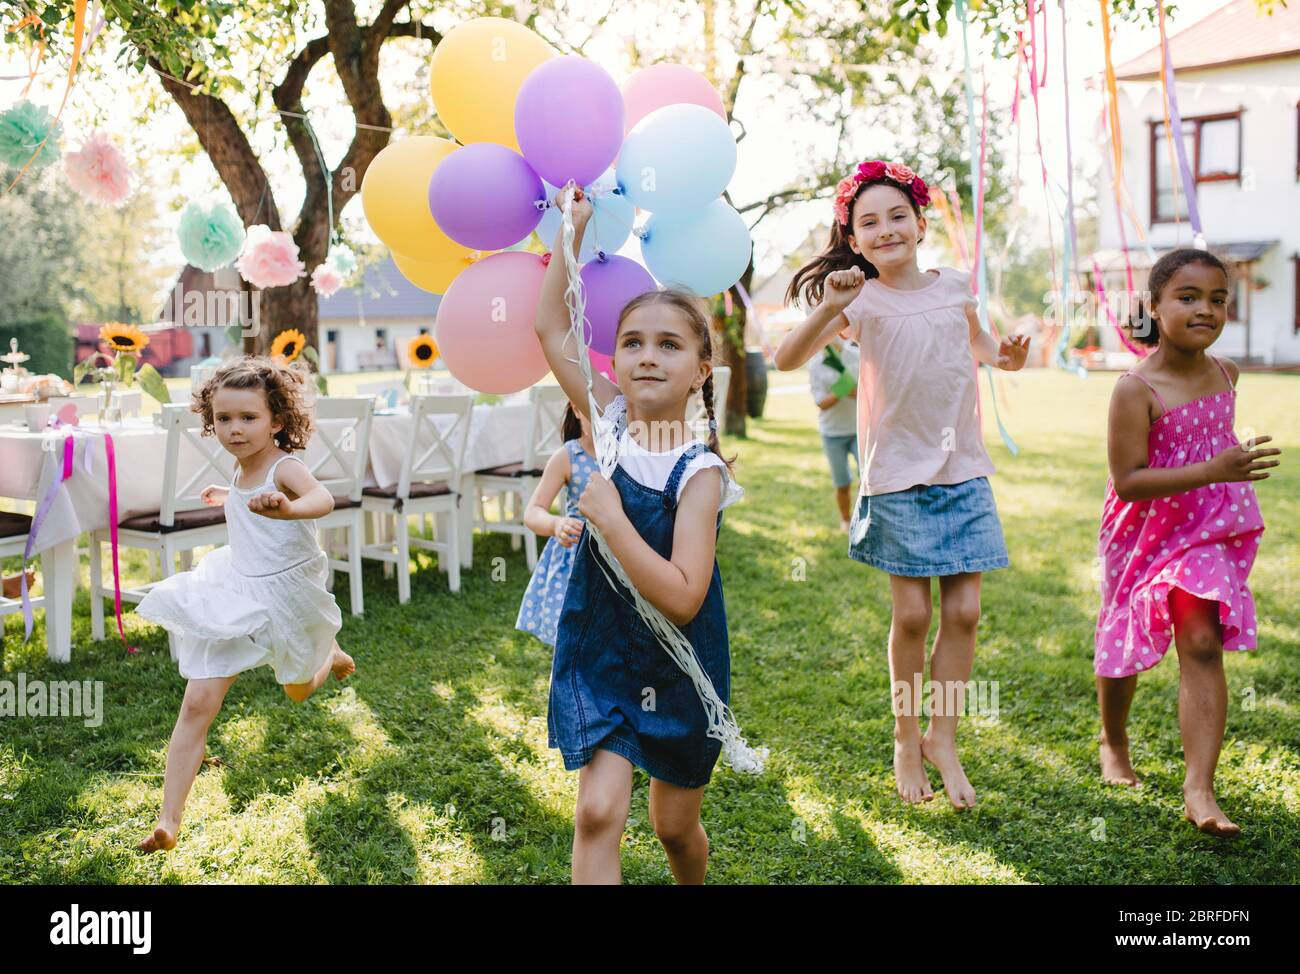 Small children outdoors in garden in summer, playing with balloons. Stock Photo